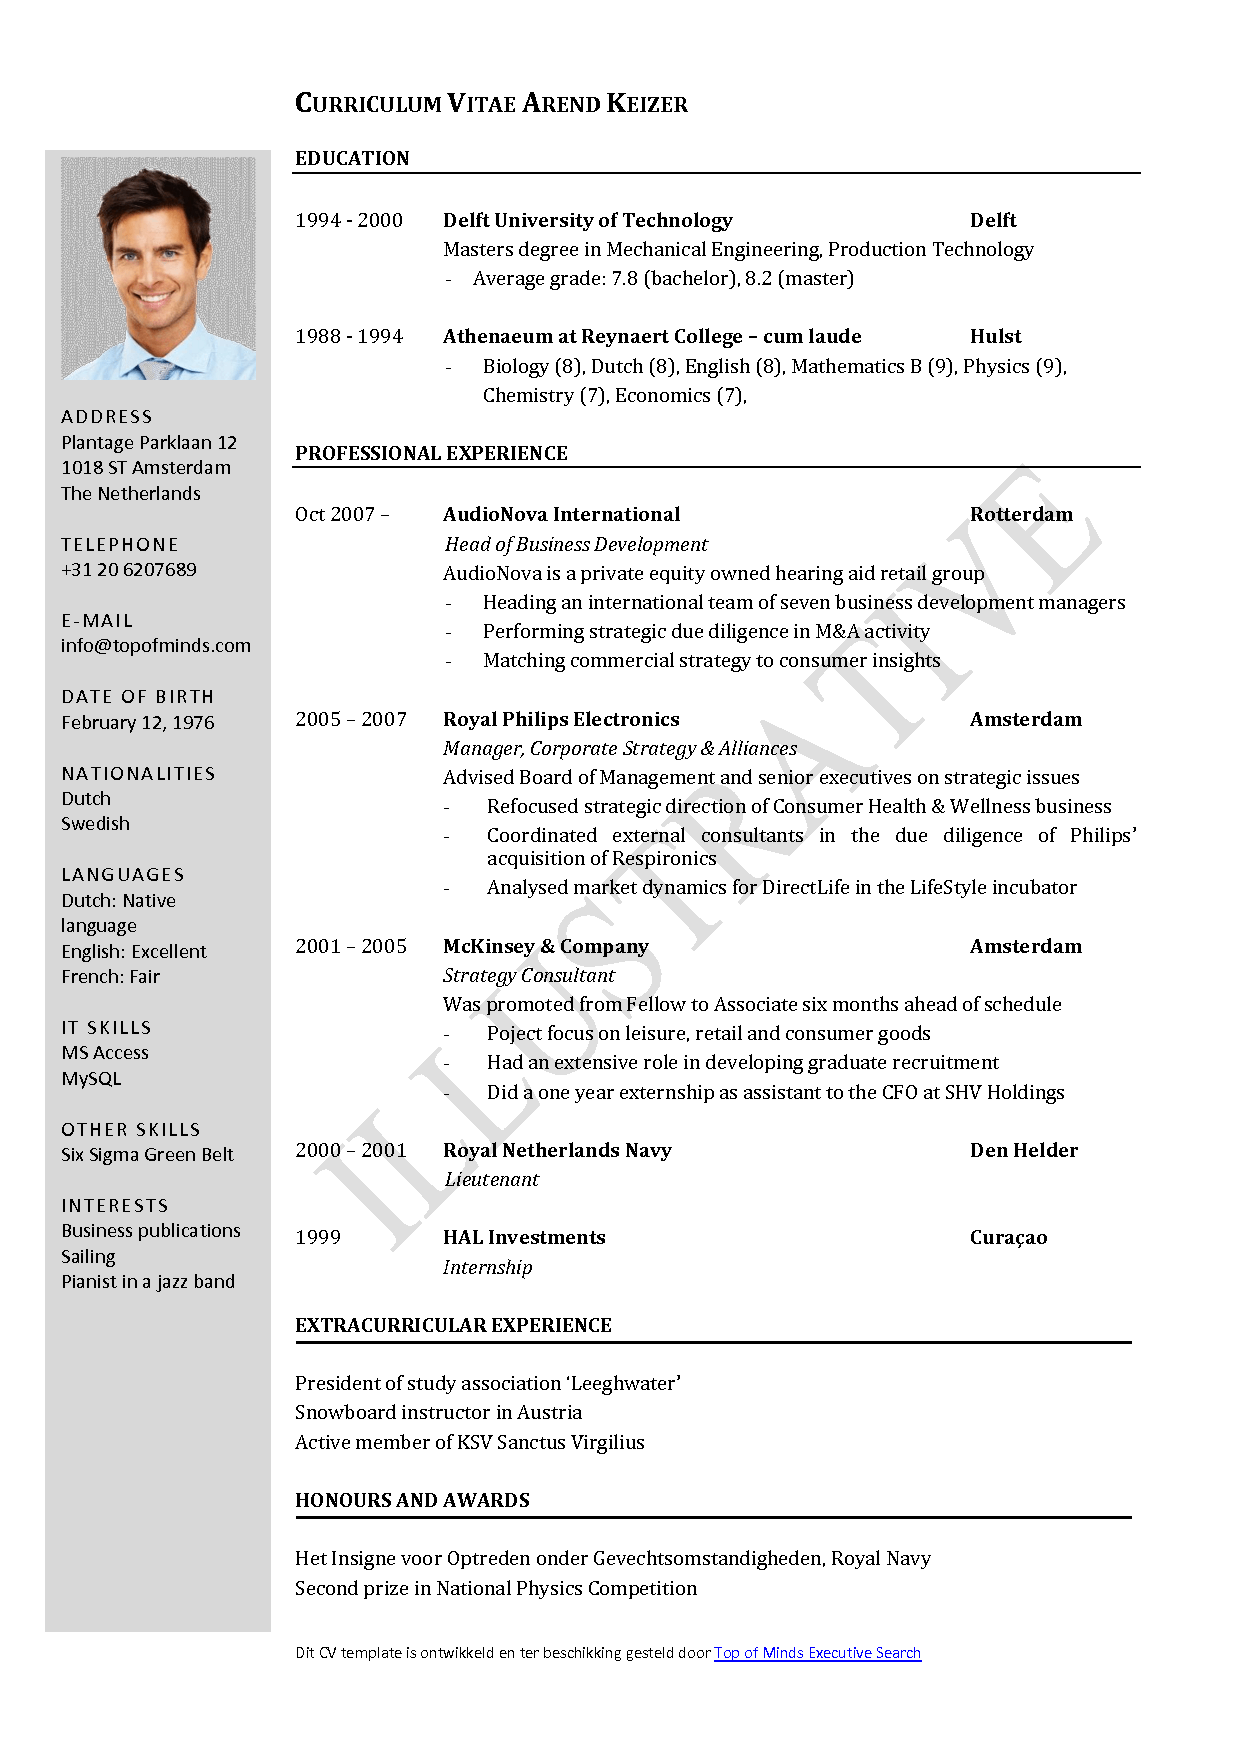 do you need to write your own cv curriculum viate or resume here you will find some templates tips and advices to write the perfect cv - Some Resume Formats